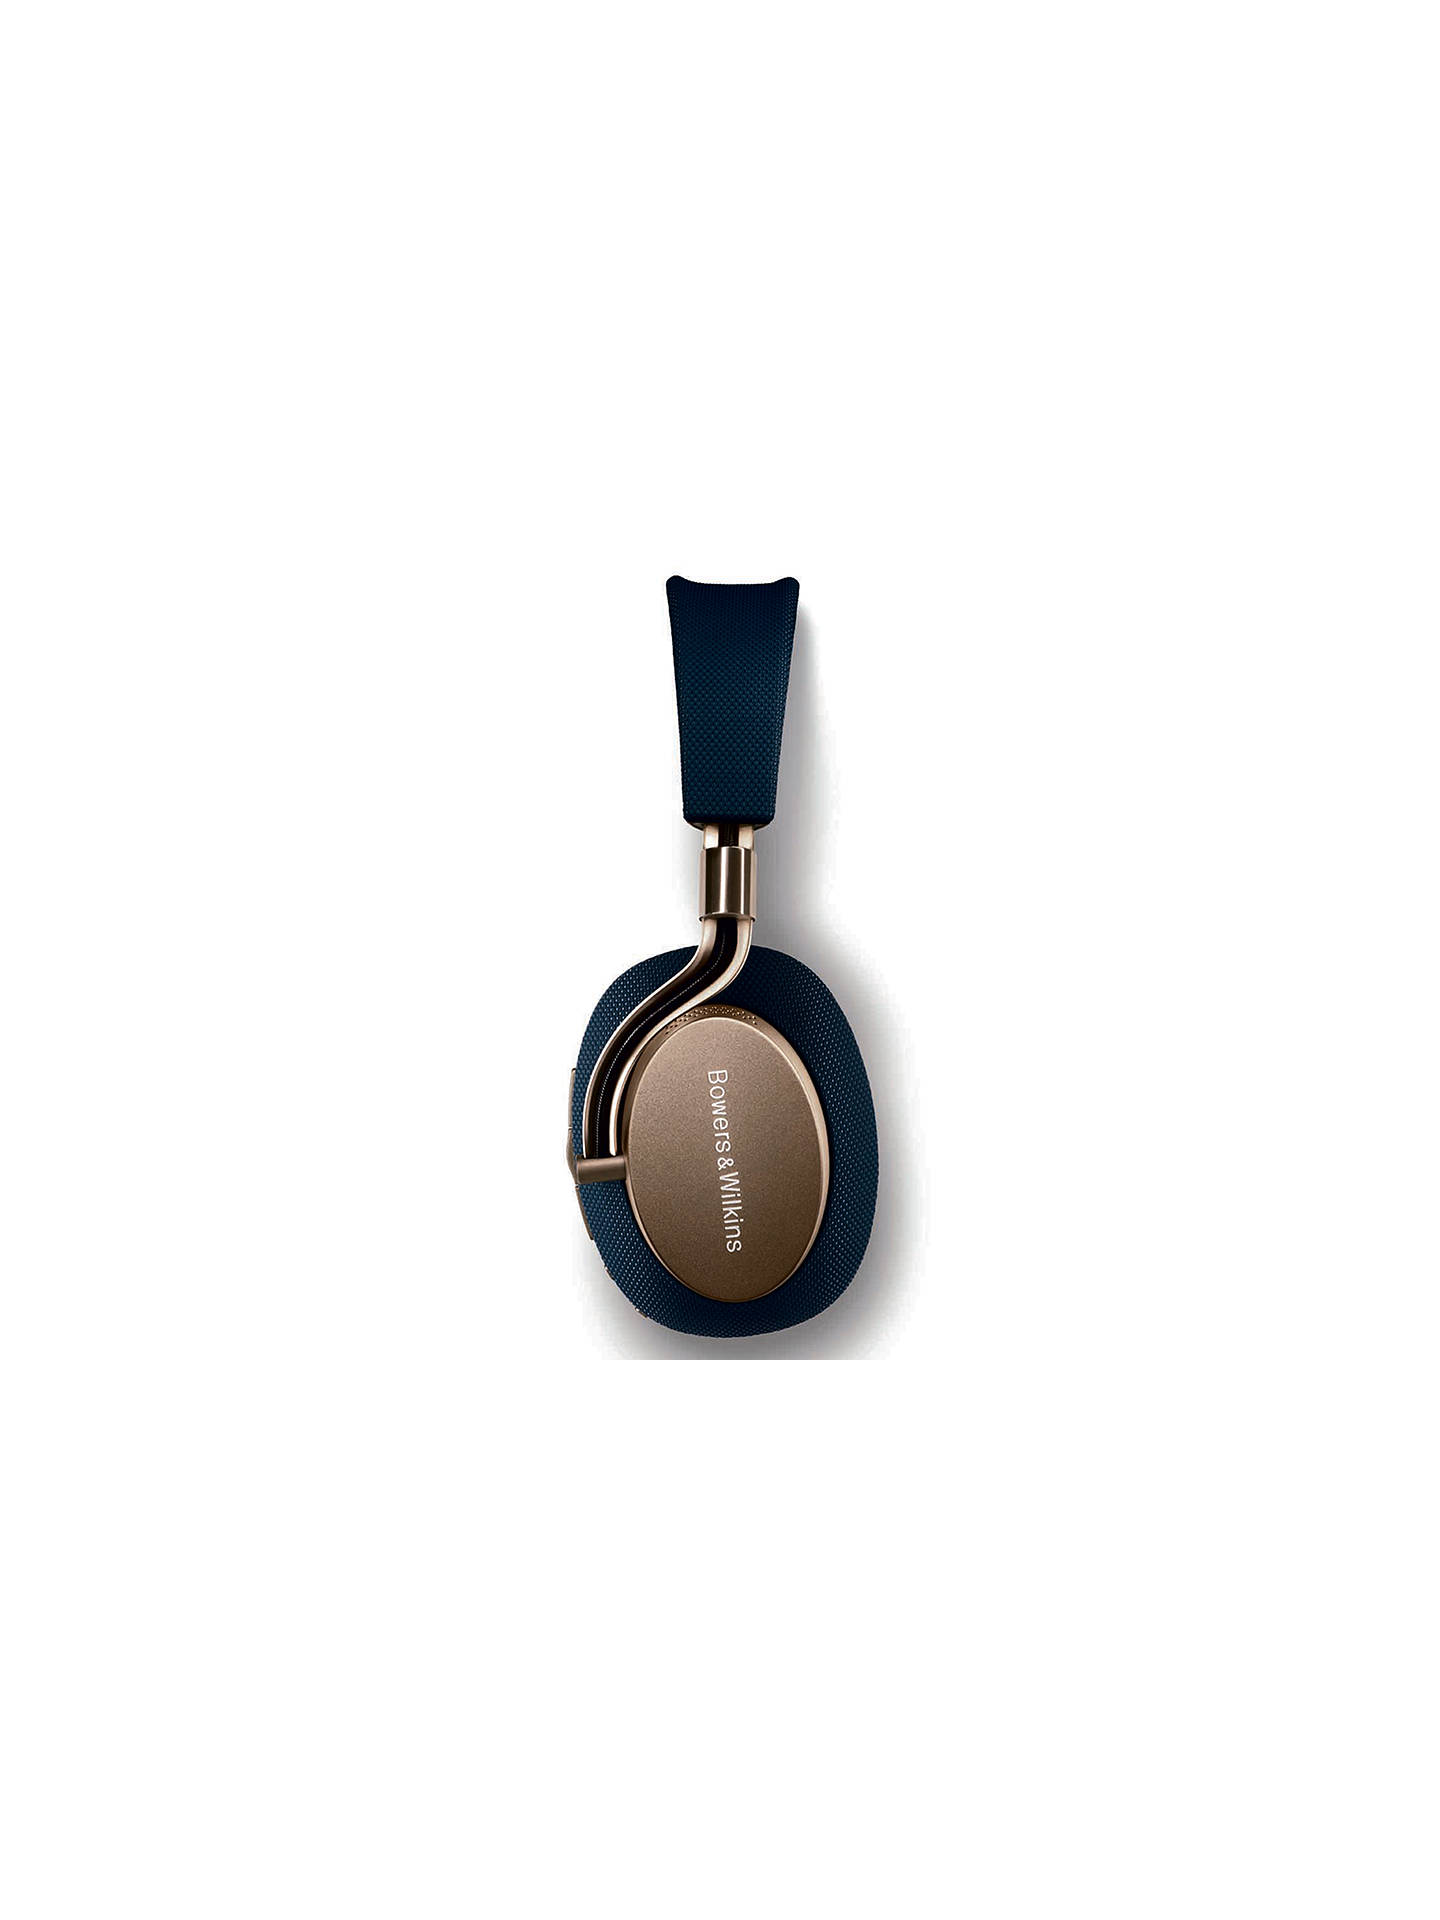 BuyBowers & Wilkins PX Noise Cancelling Wireless Over Ear Headphones, Soft Gold Online at johnlewis.com